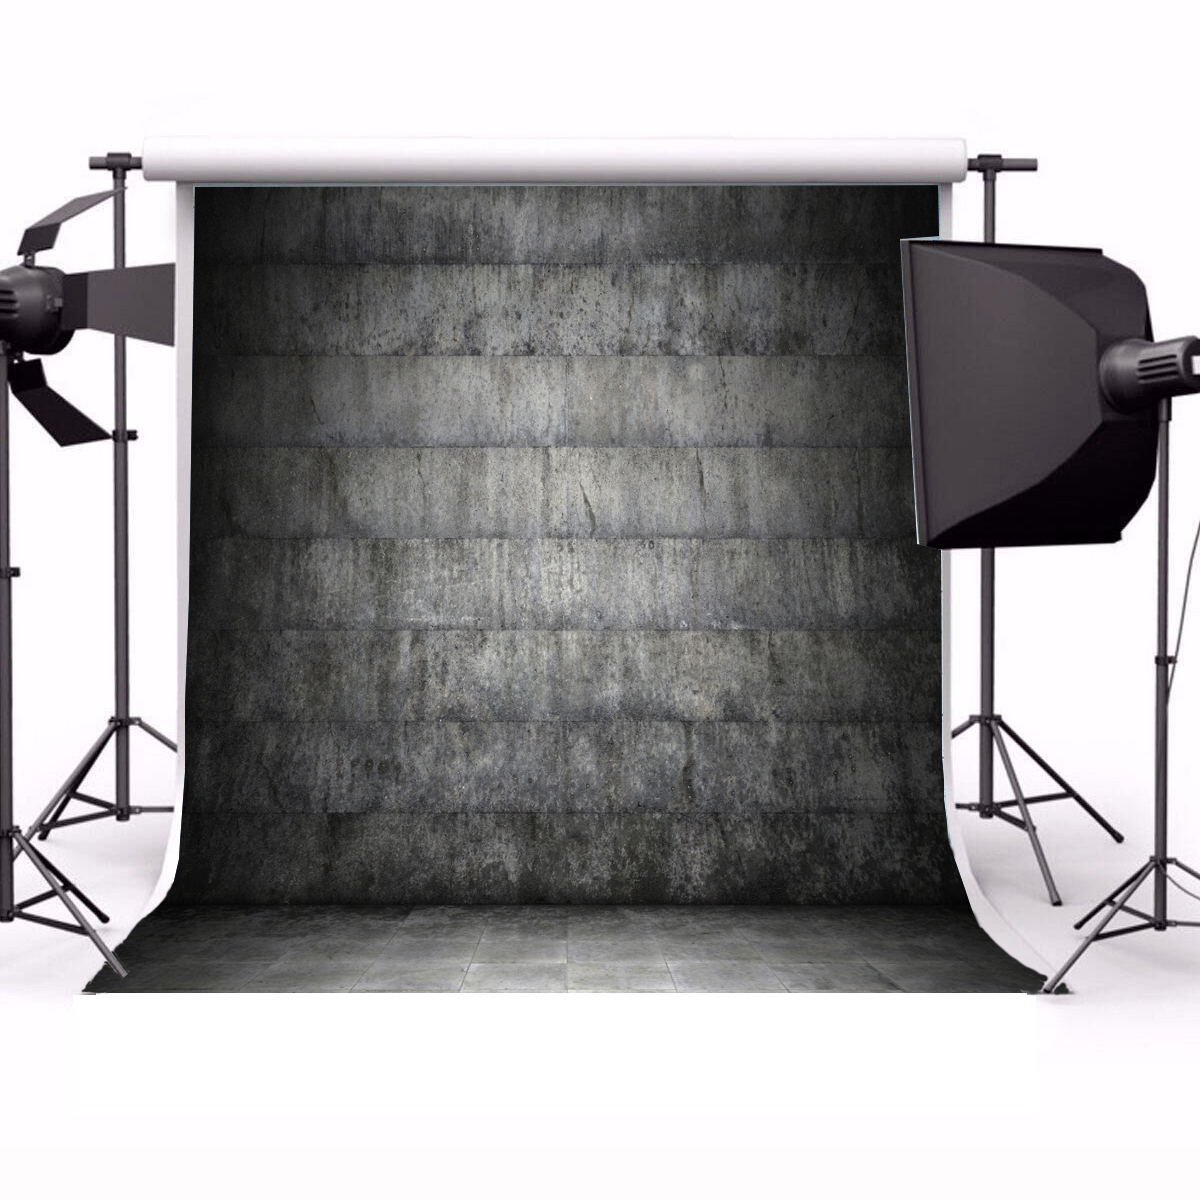 Rock Wall Photography Backdrops for Studio 8x8ft Polyester Studio Backdrop Customized Photography Backdrop Stone Wall Backdrop Grunge Antique Ingredient Rough Wall Retro Architecture